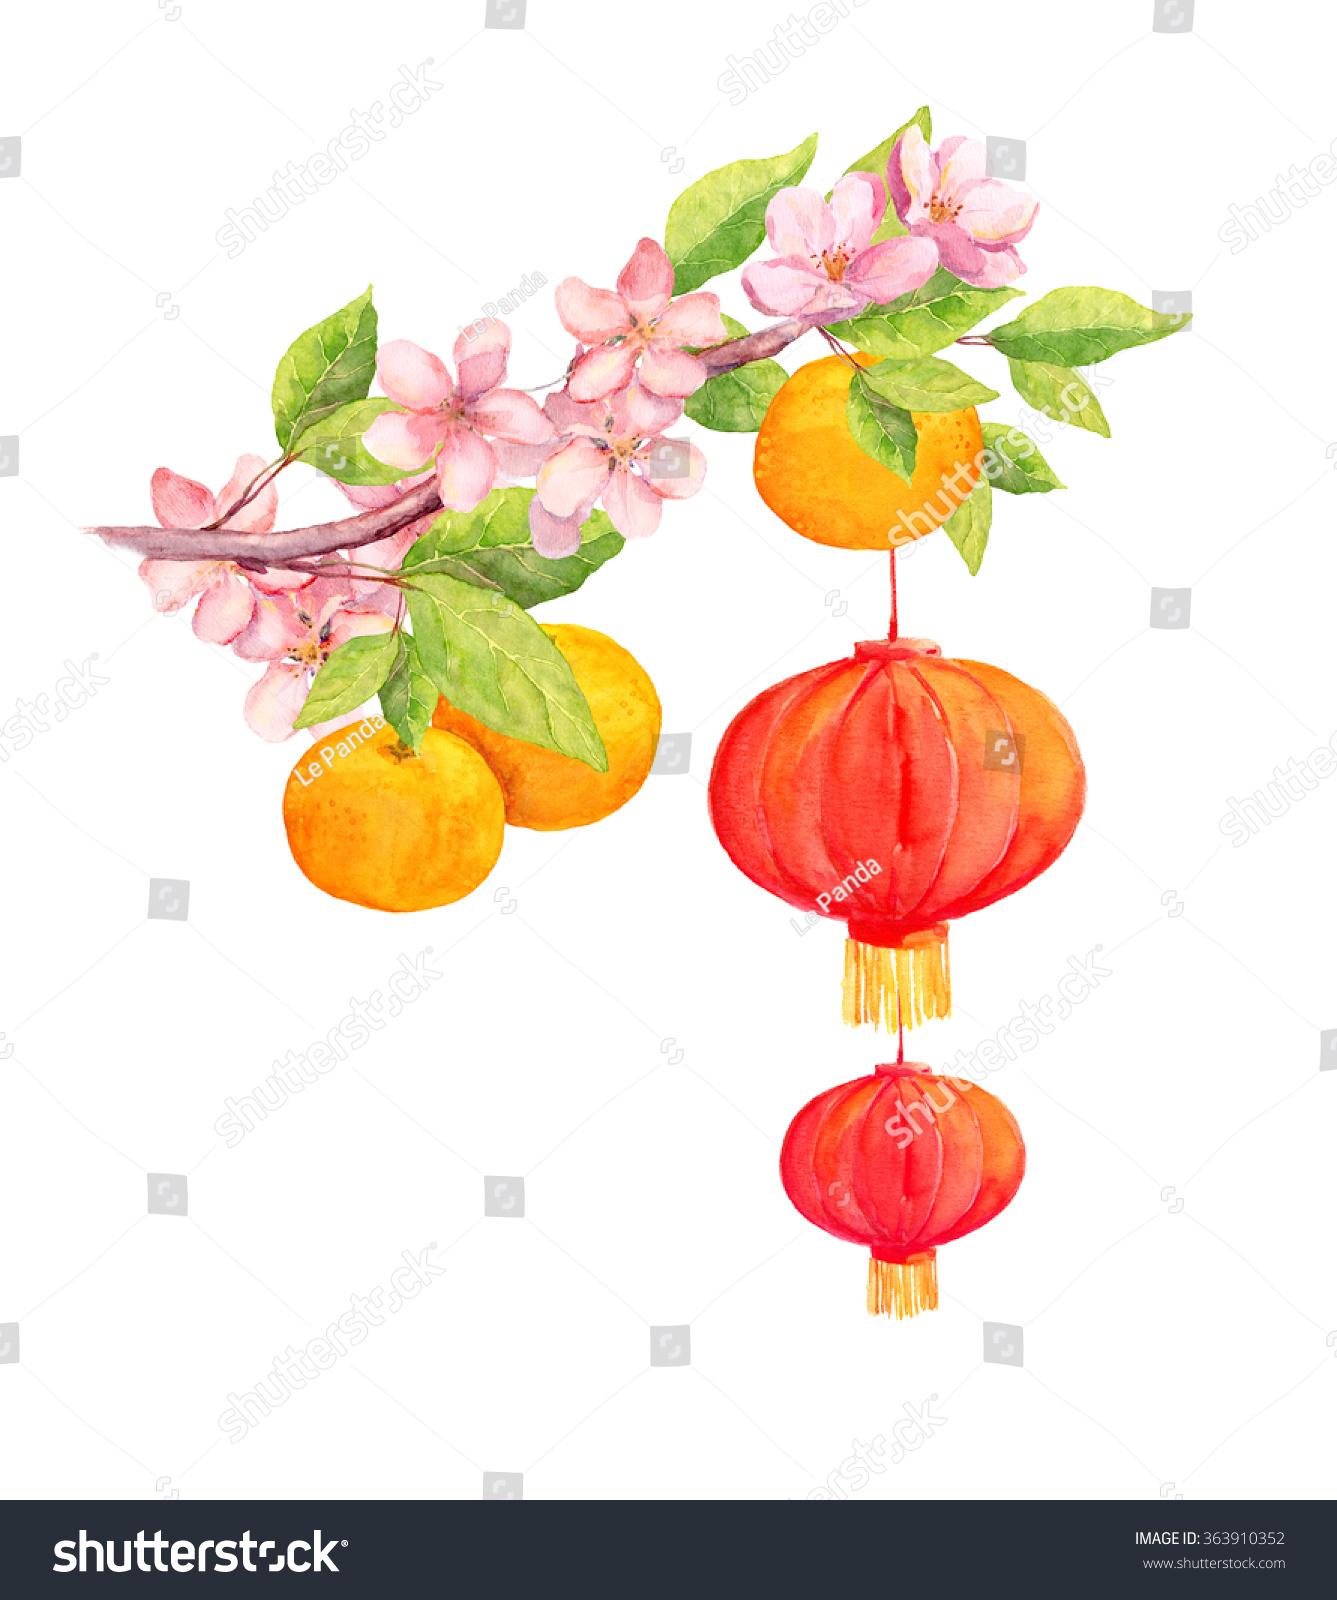 Plum Peach Flower Red Paper Lantern Stock Illustration 363910352